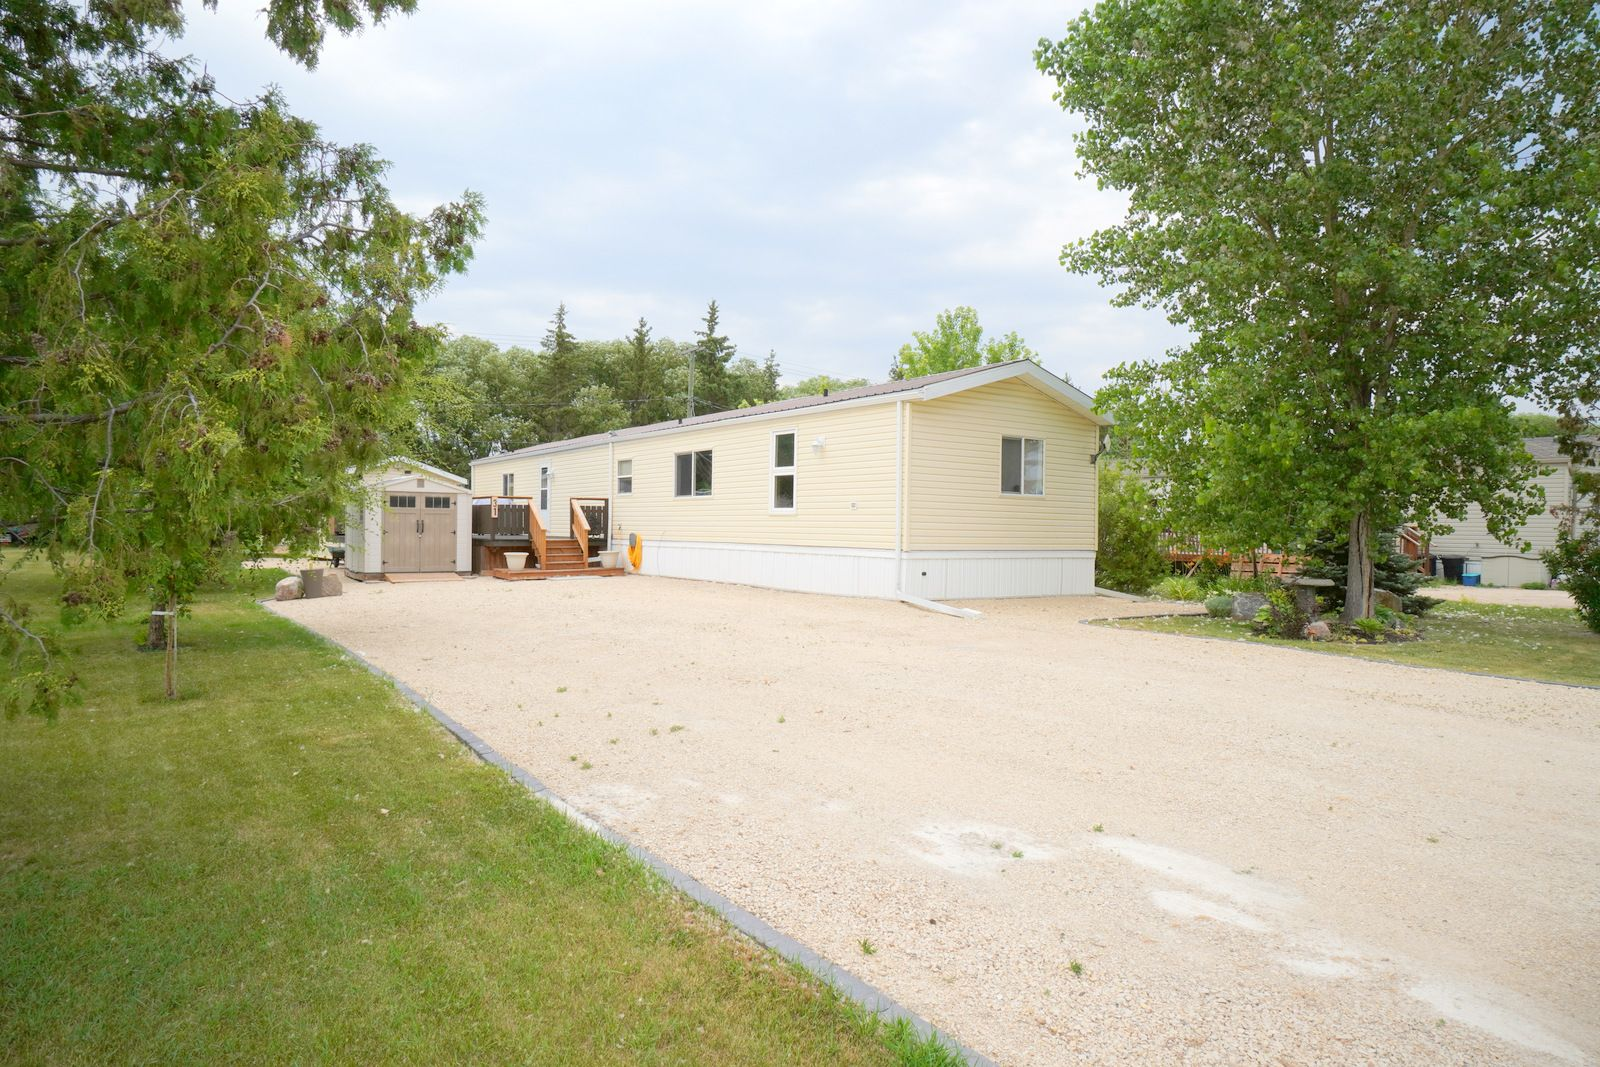 Main Photo: 31 North Drive in Portage la Prairie RM: House for sale : MLS®# 202117386